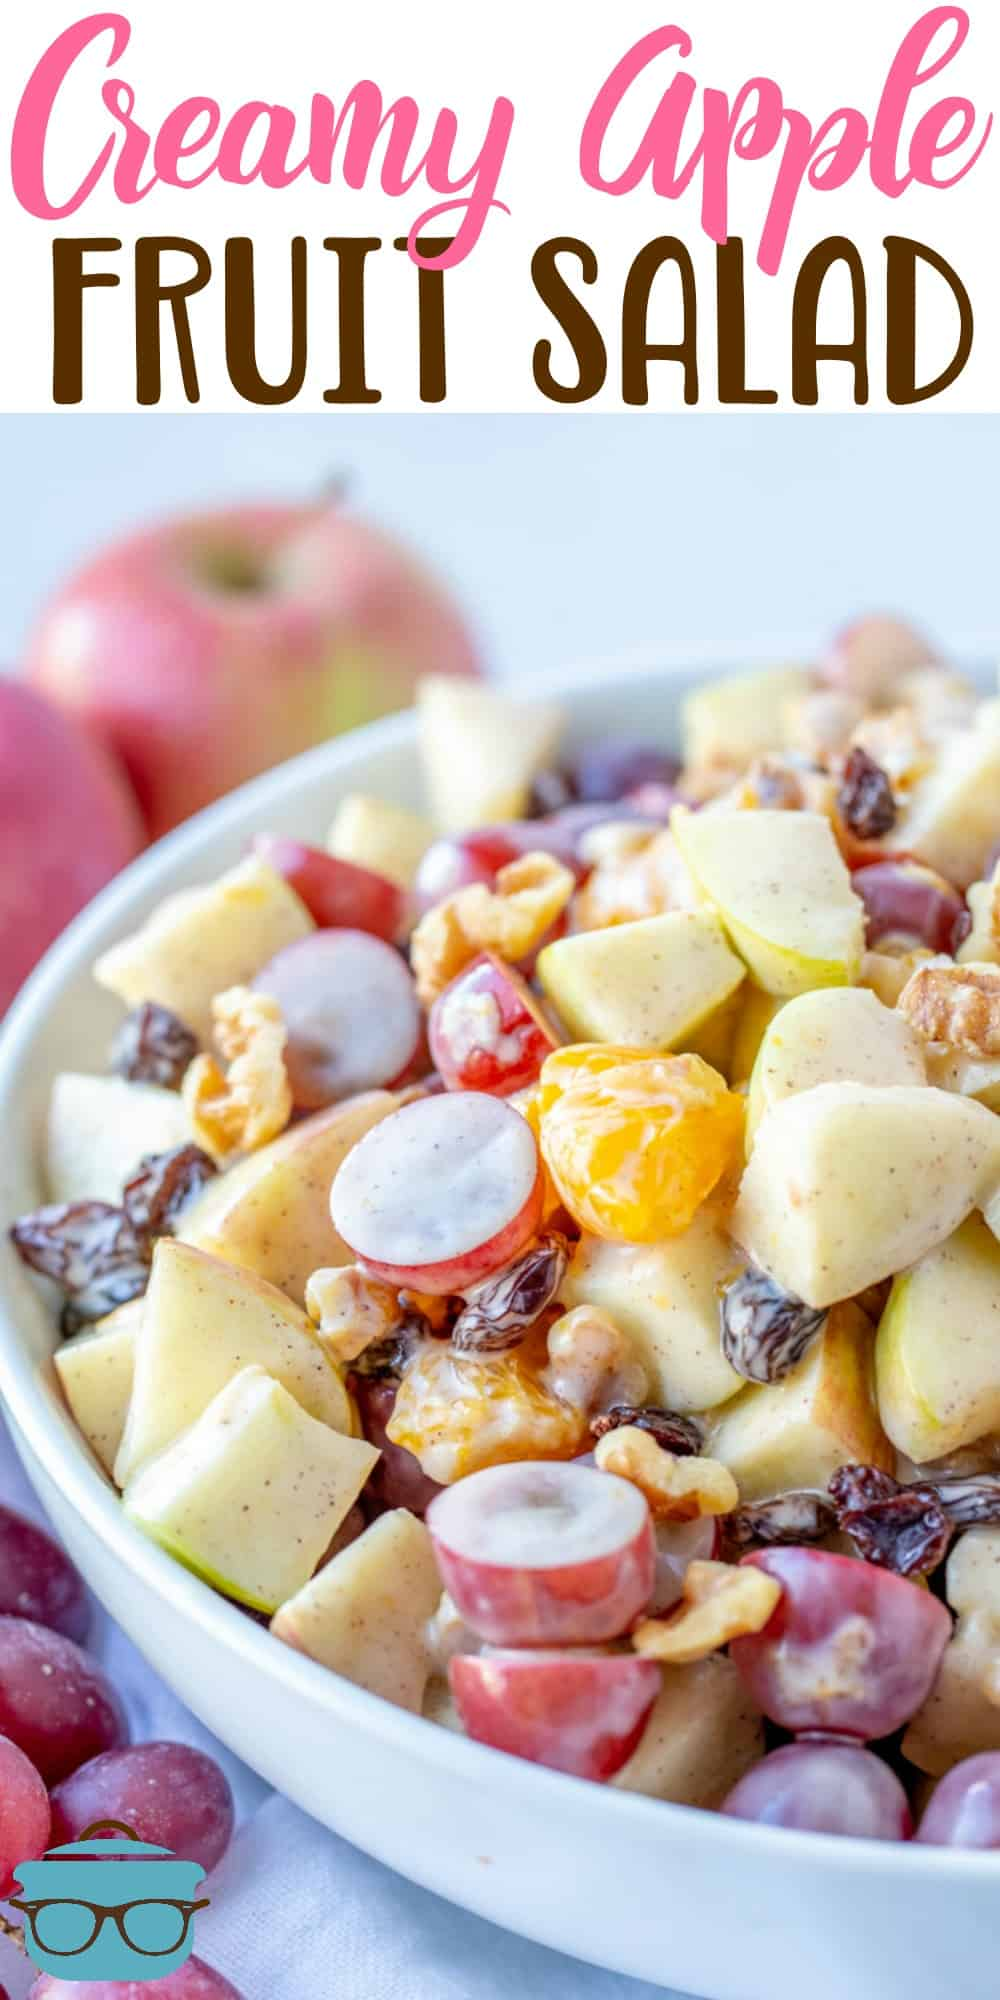 This Apple Fruit Salad with Greek vanilla yogurt dressing is filled with apples, grapes, oranges and mixed with a creamy, cinnamon sauce. #fruitsalad #applefruitsalad